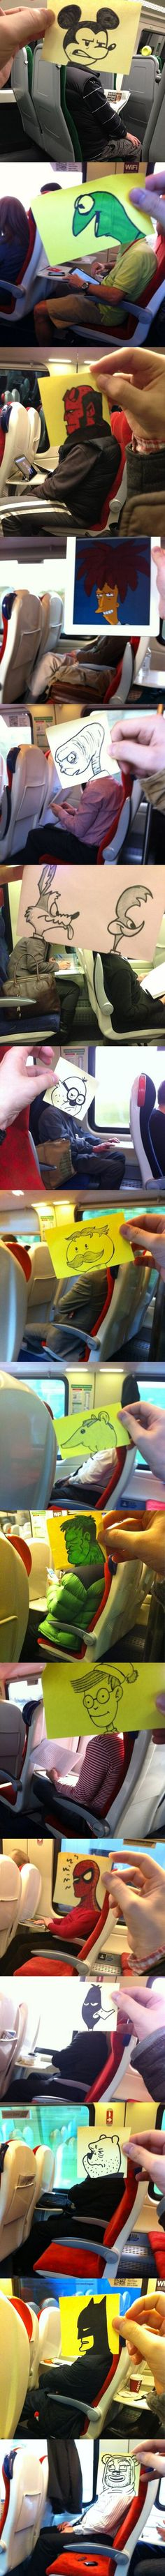 How to pass time on the train When you know how to draw xD